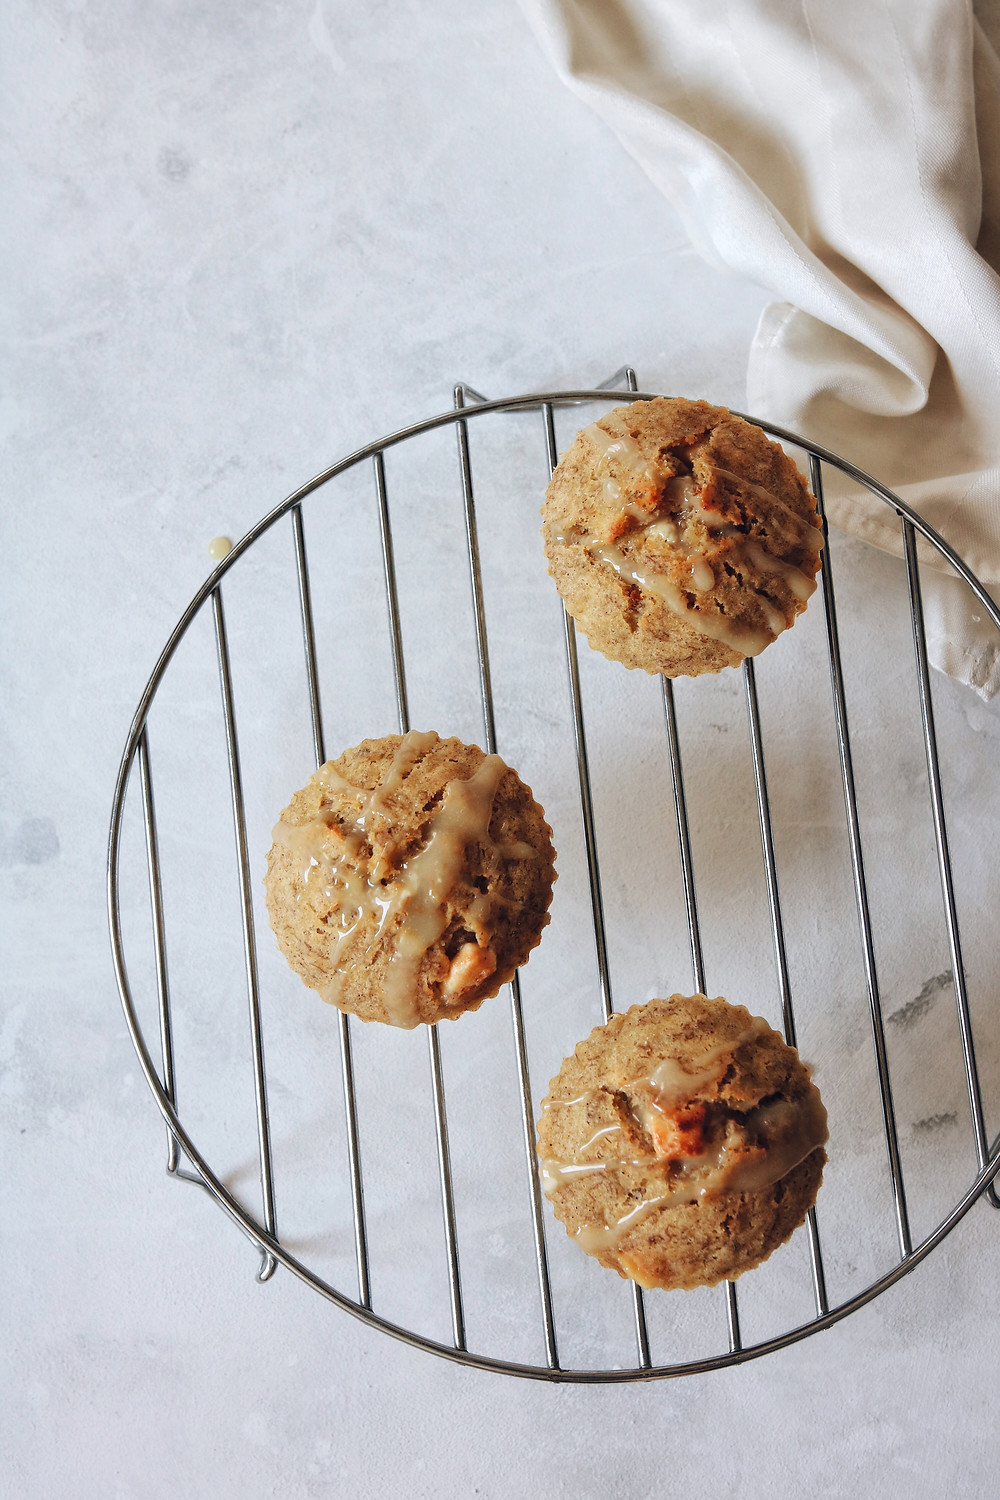 Three banana white chocolate and cinnamon muffins cool down on a cooling rack, a birds eye view.